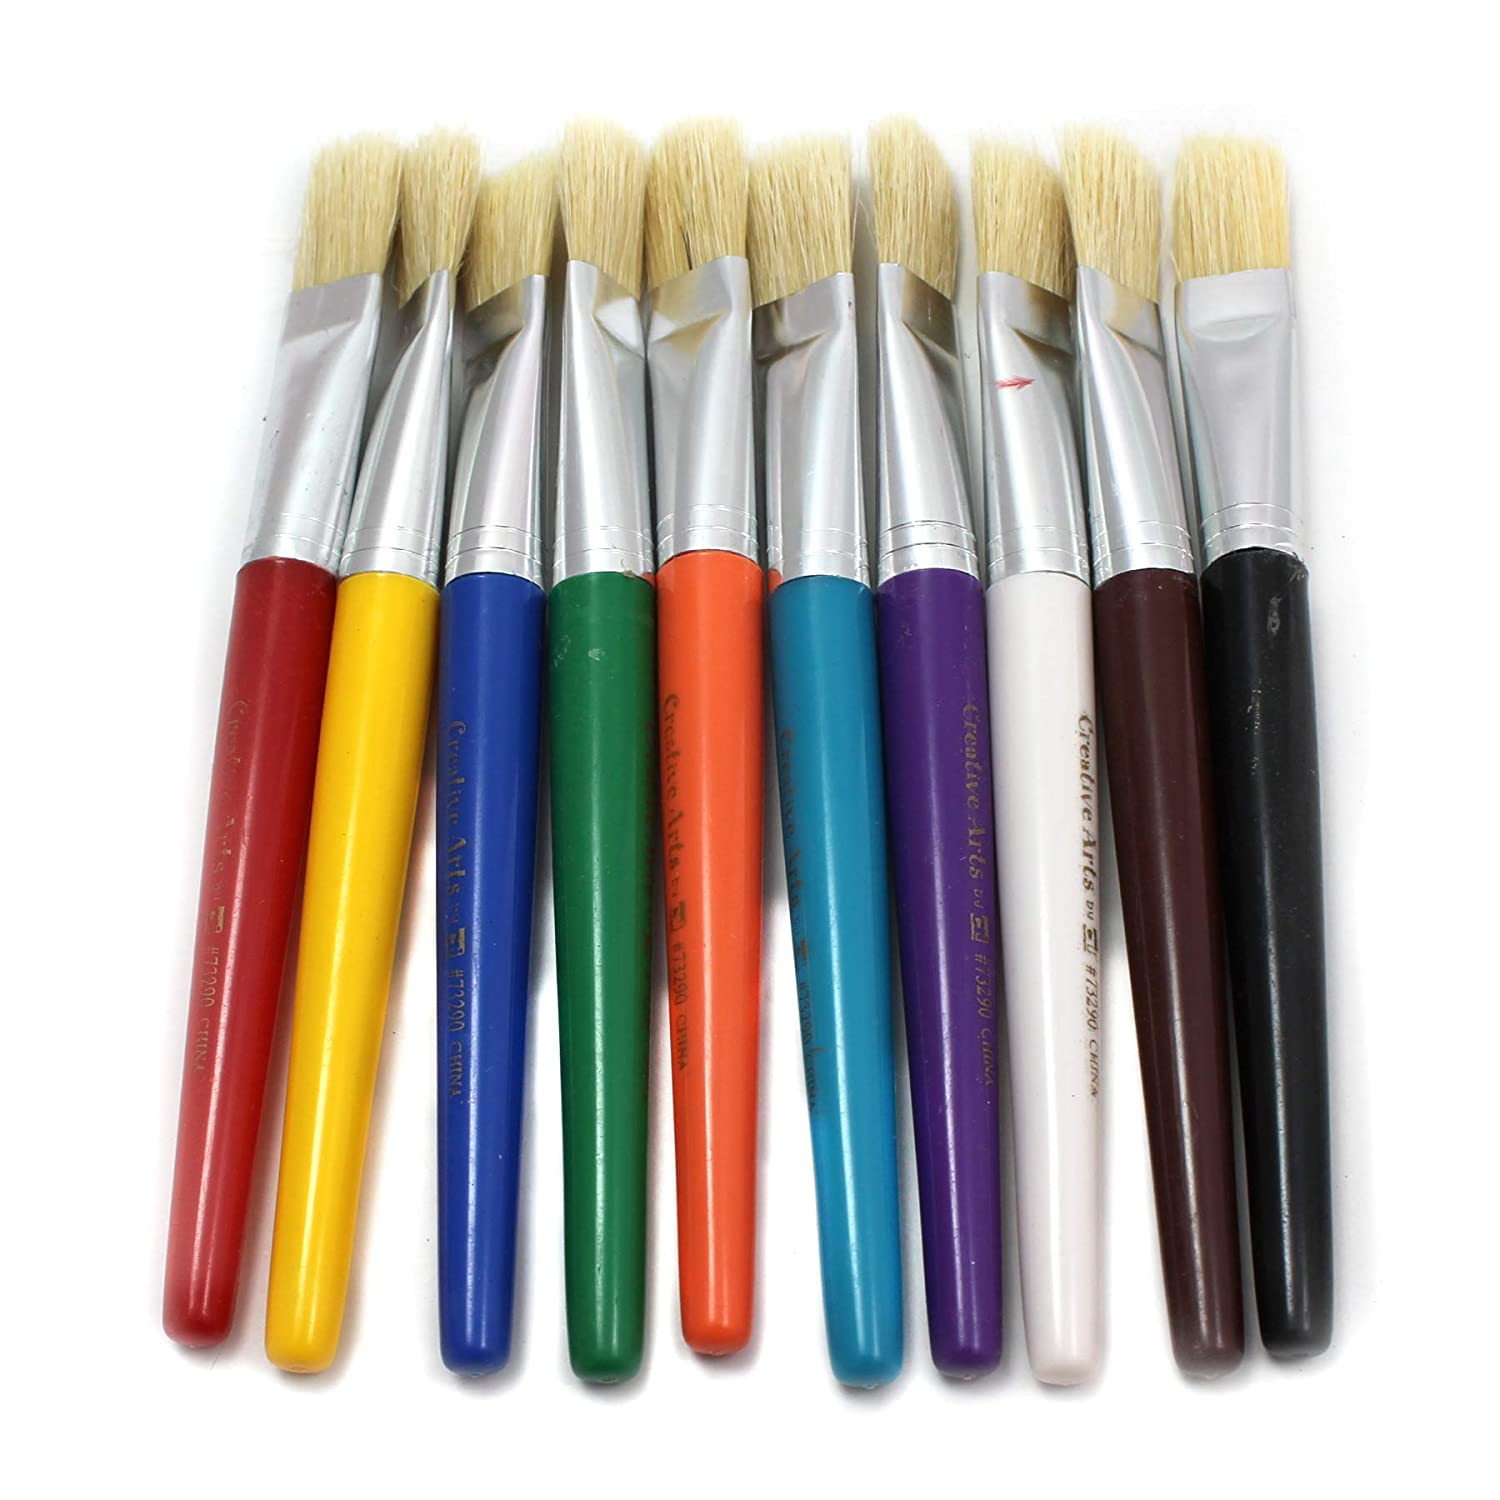 Charles Leonard CHL73290BN Creative New products, world's highest quality popular! Arts Brushes Stubby As Flat Today's only